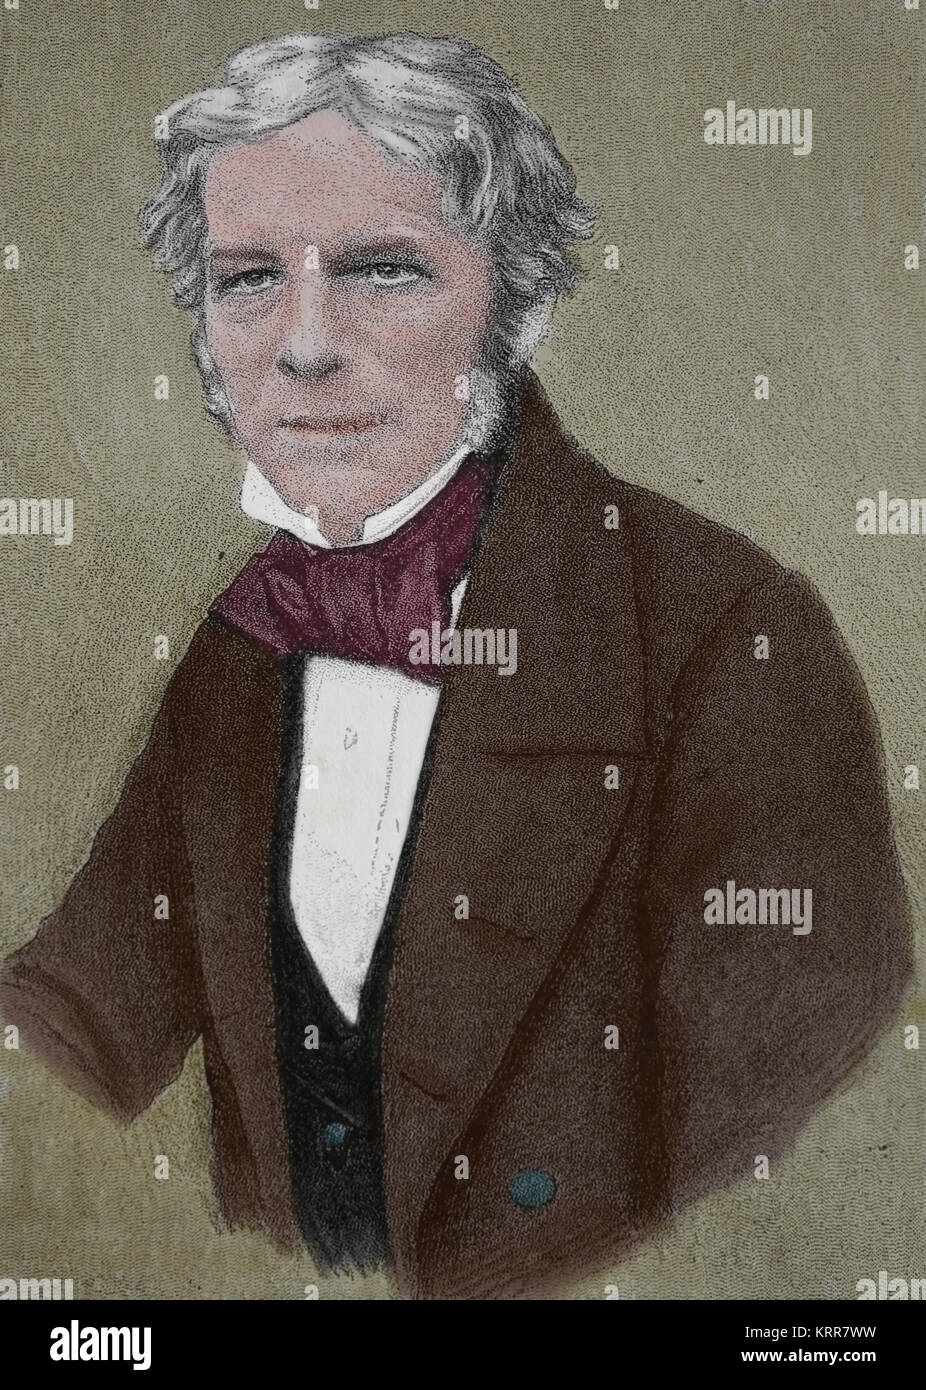 michael faraday contribution to electromagnetism